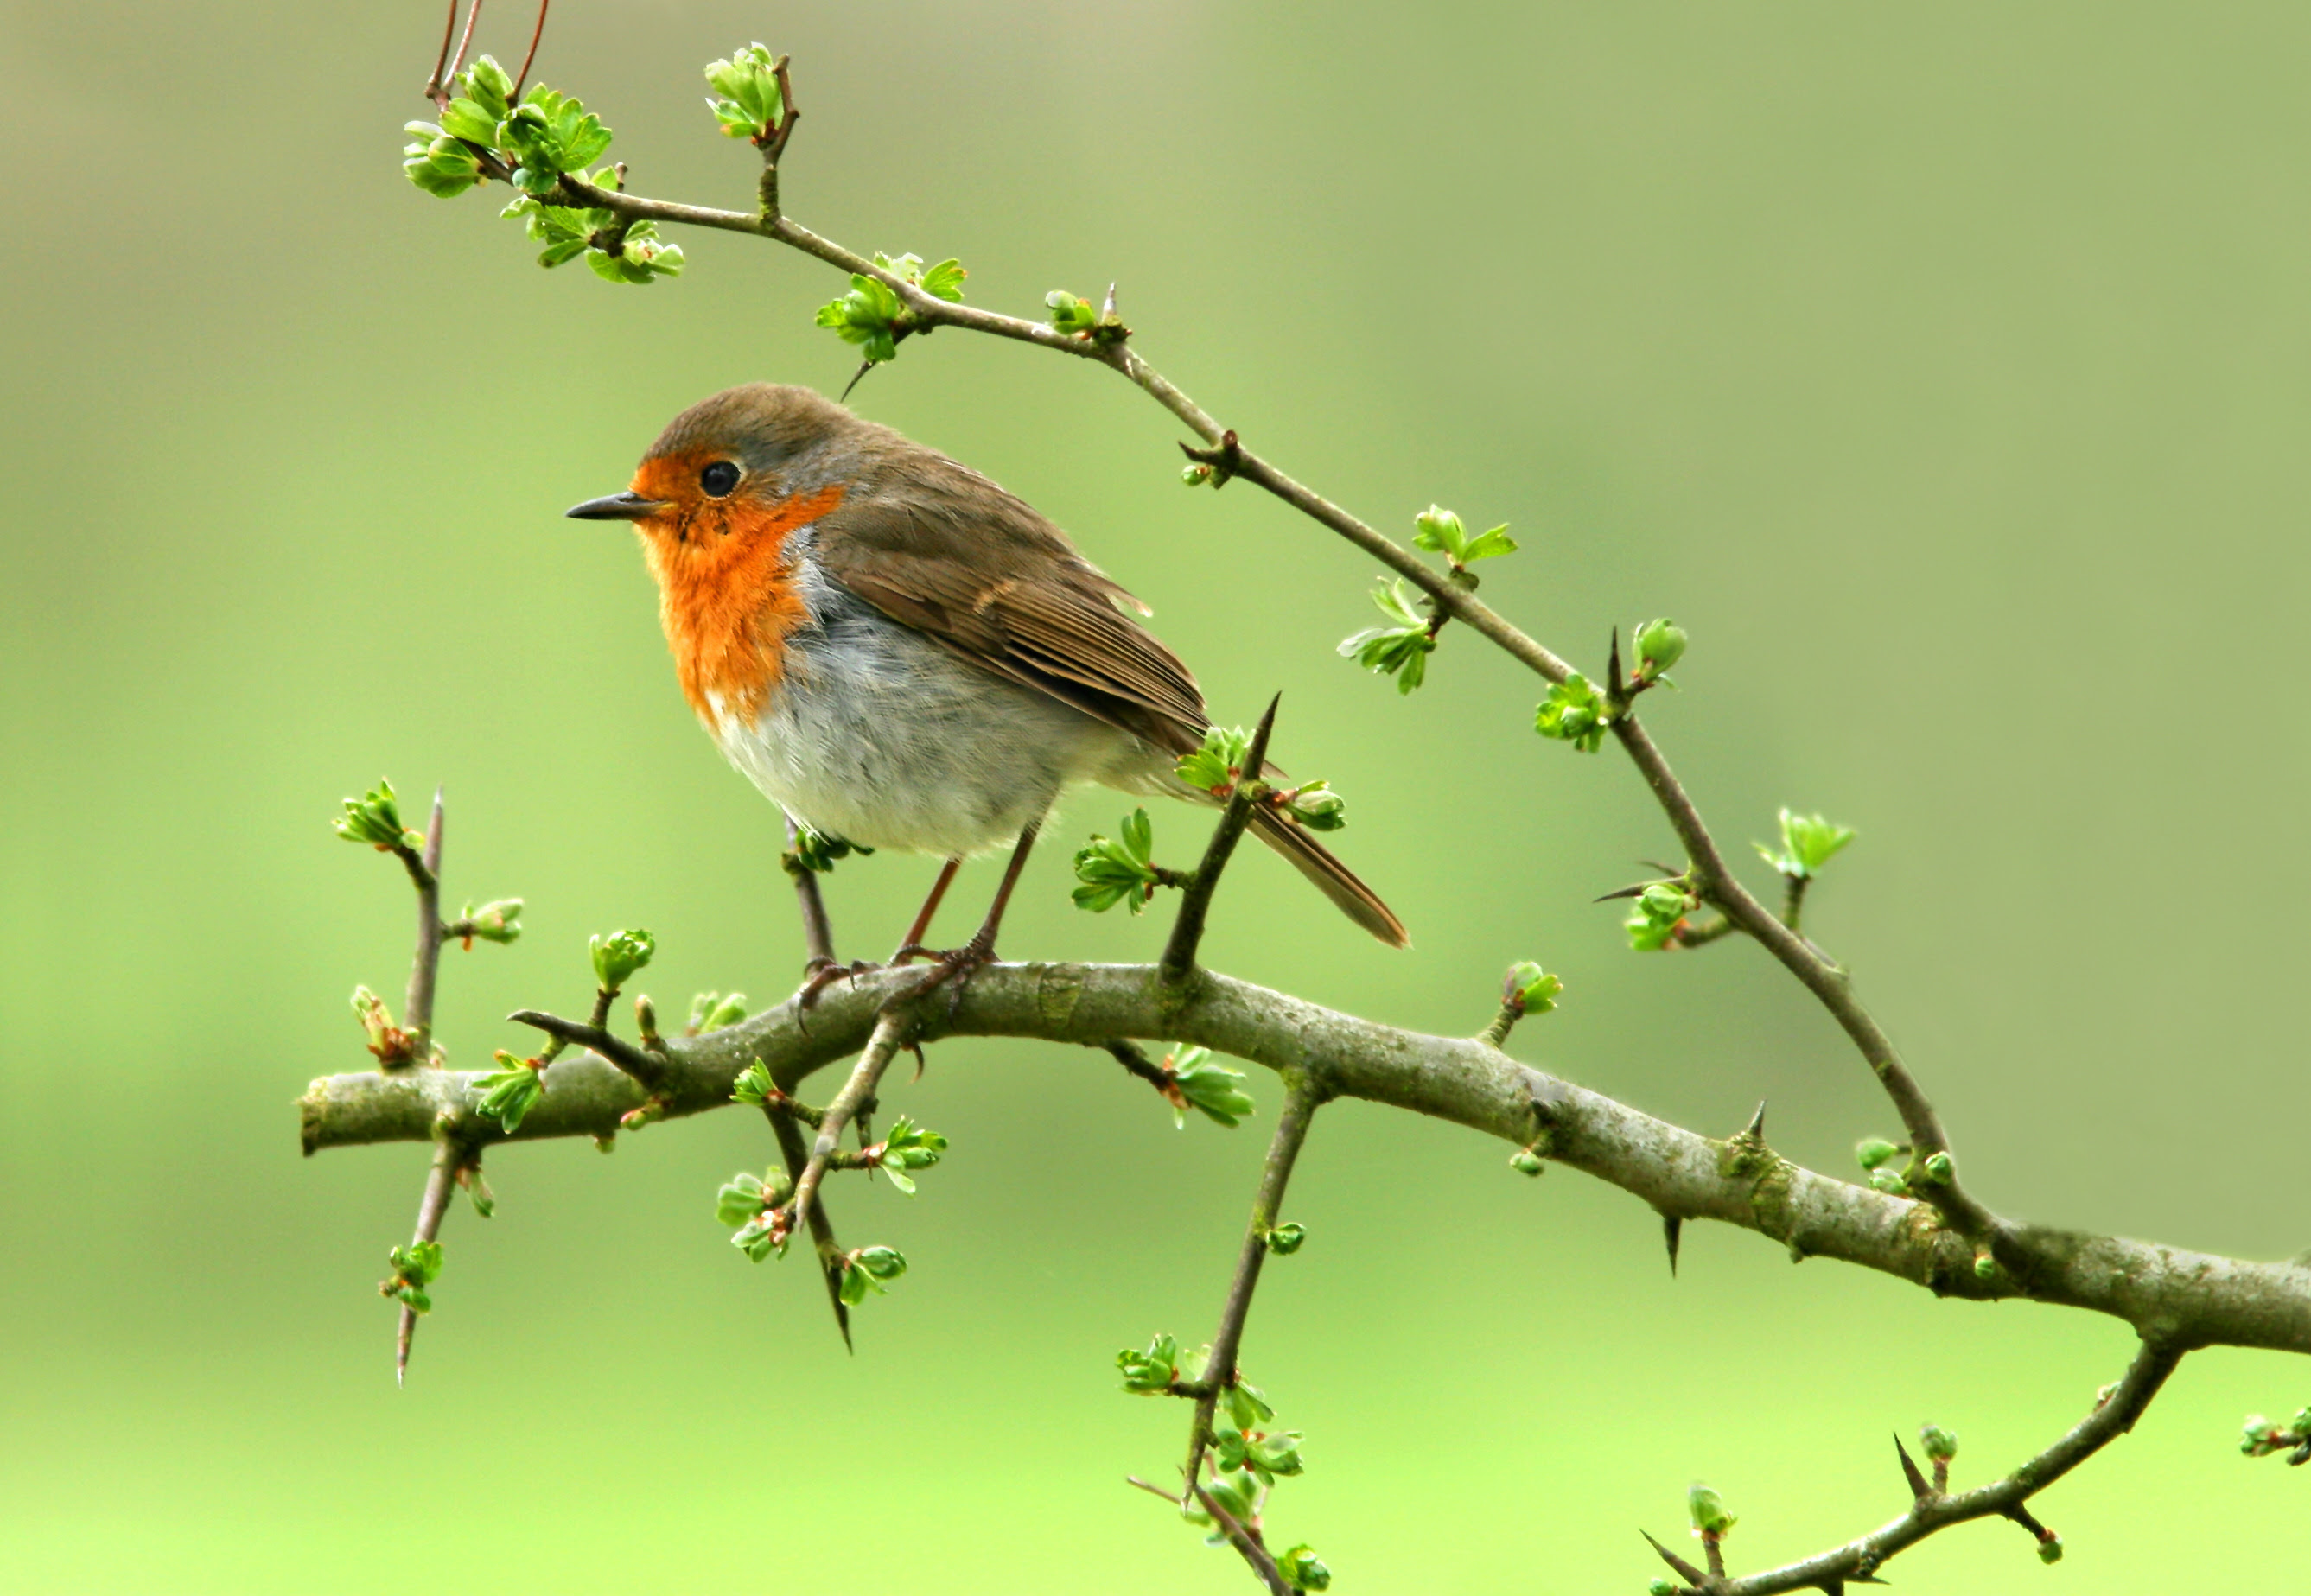 A robin sitting on a branch of a hawthorn tree.